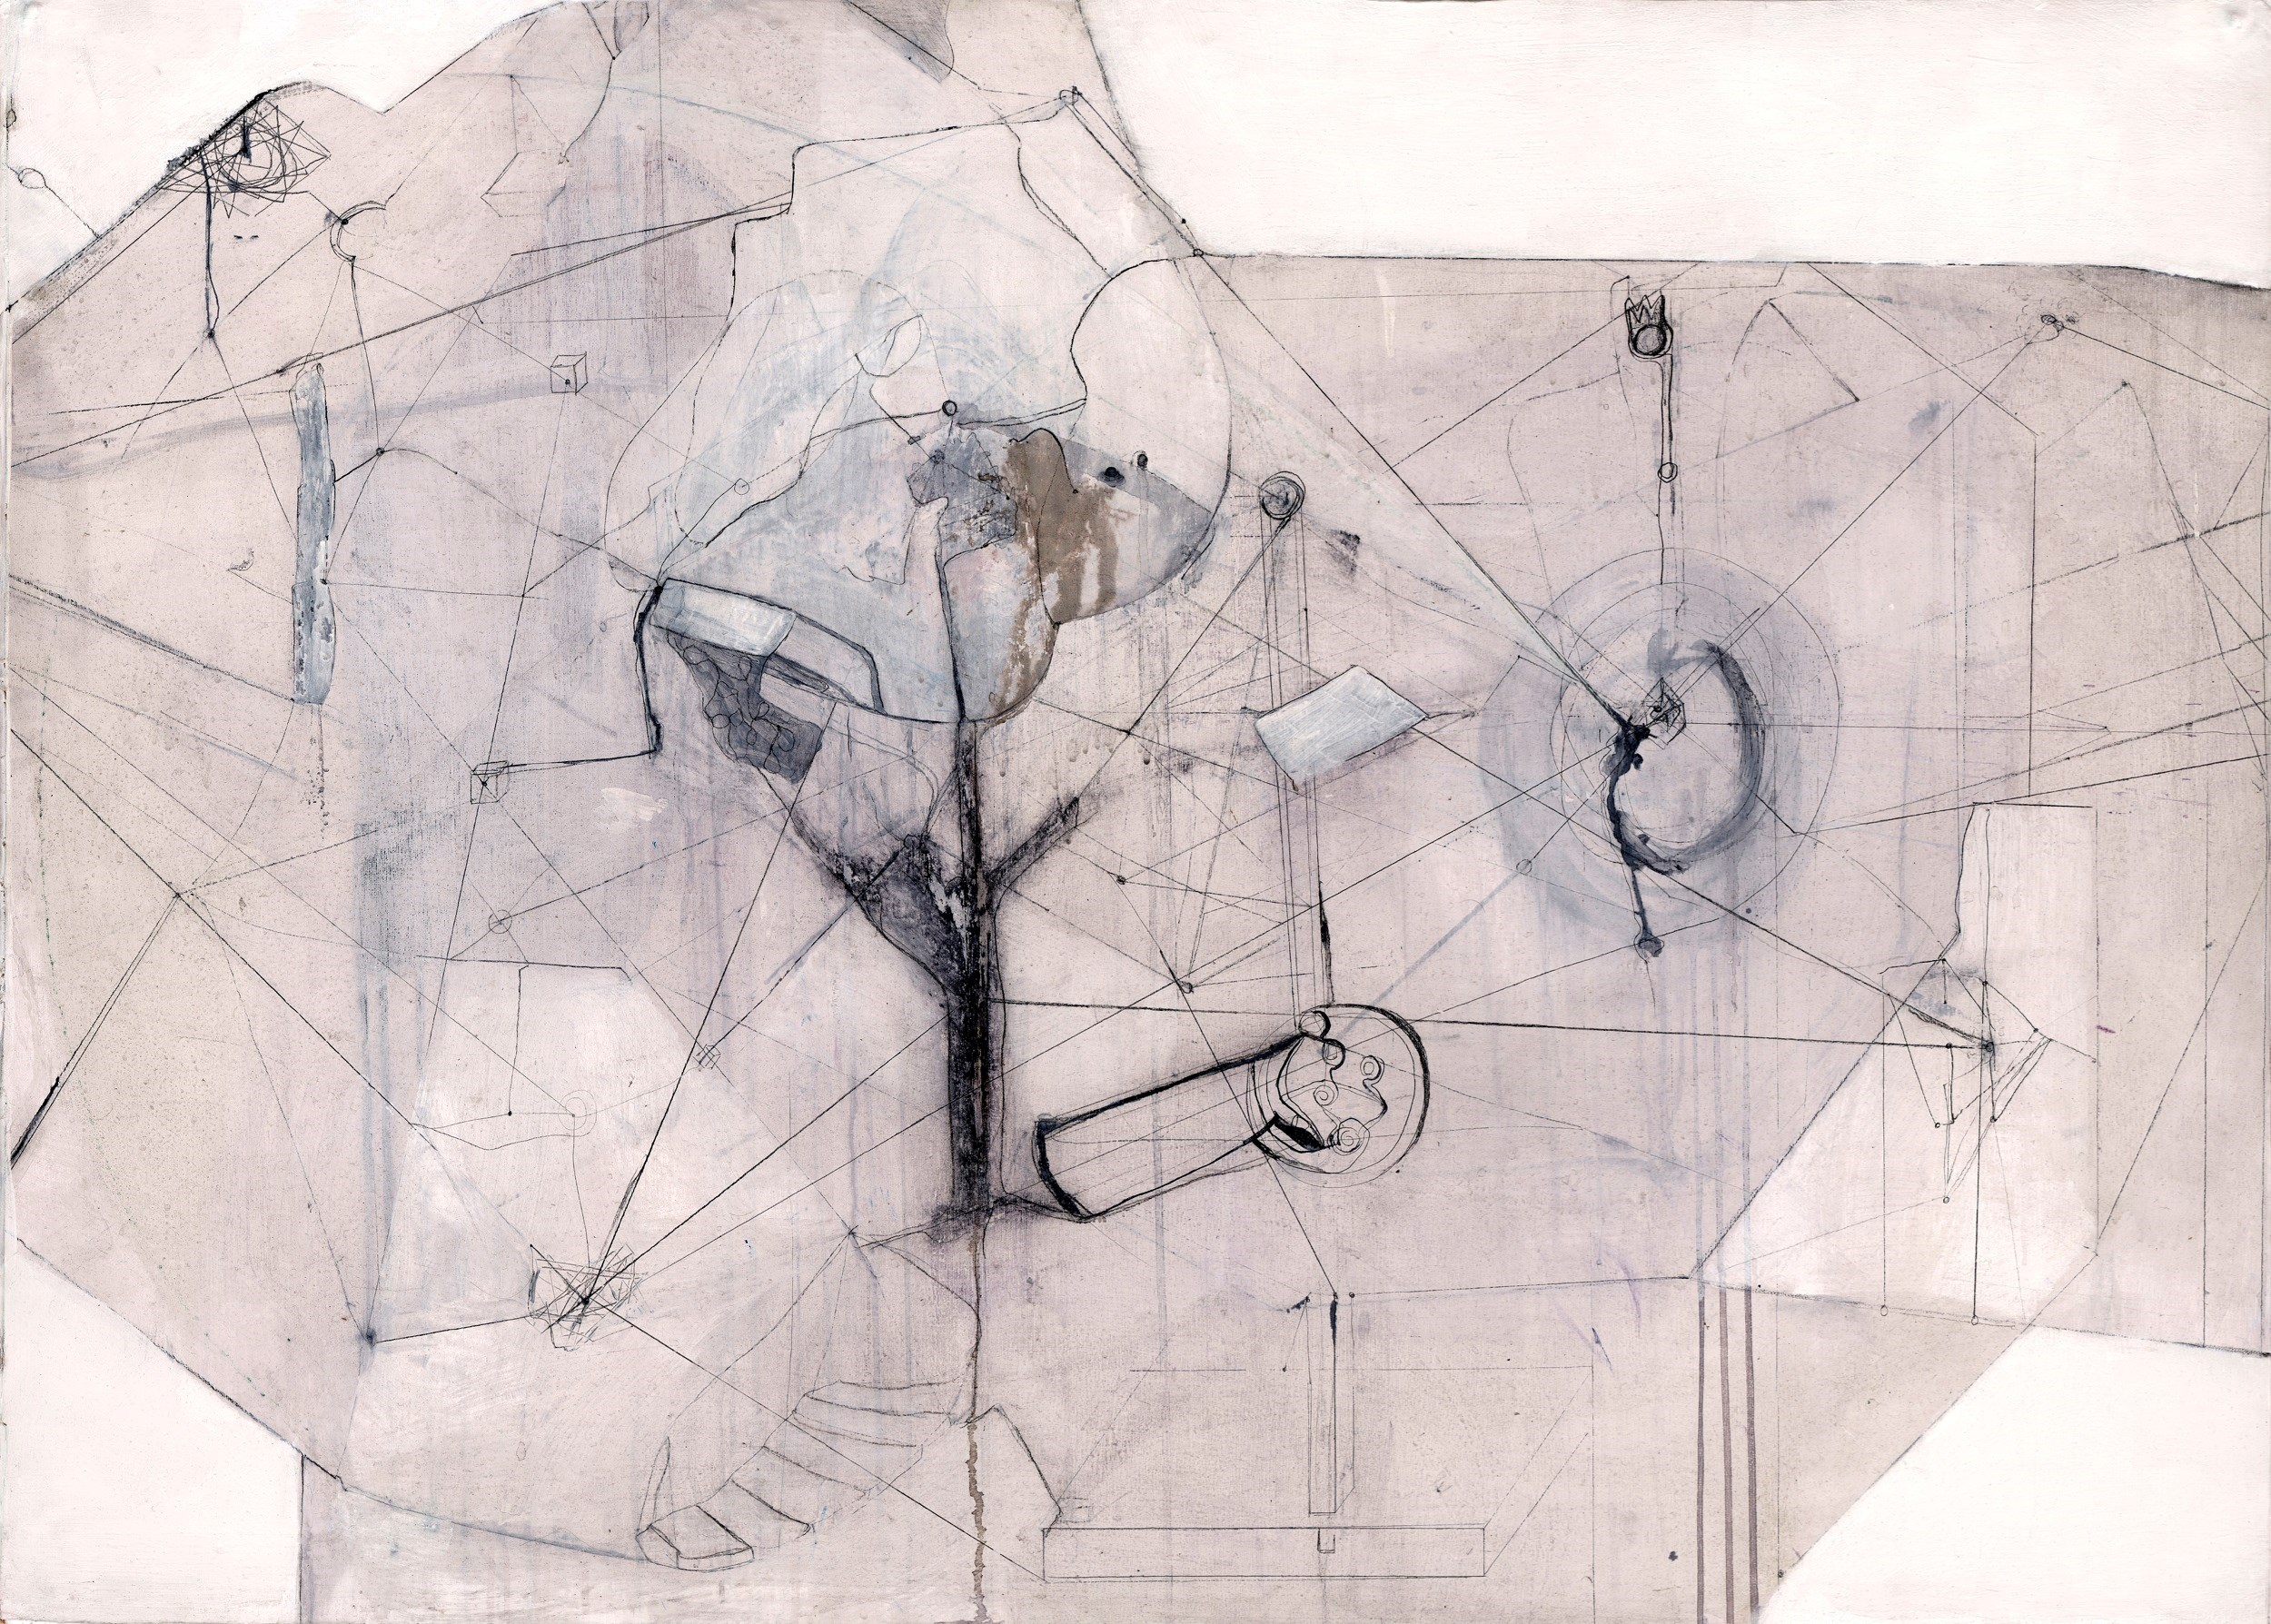 Architectural system organism machine 2, original Abstract Acrylic Drawing and Illustration by Simis Gatenio